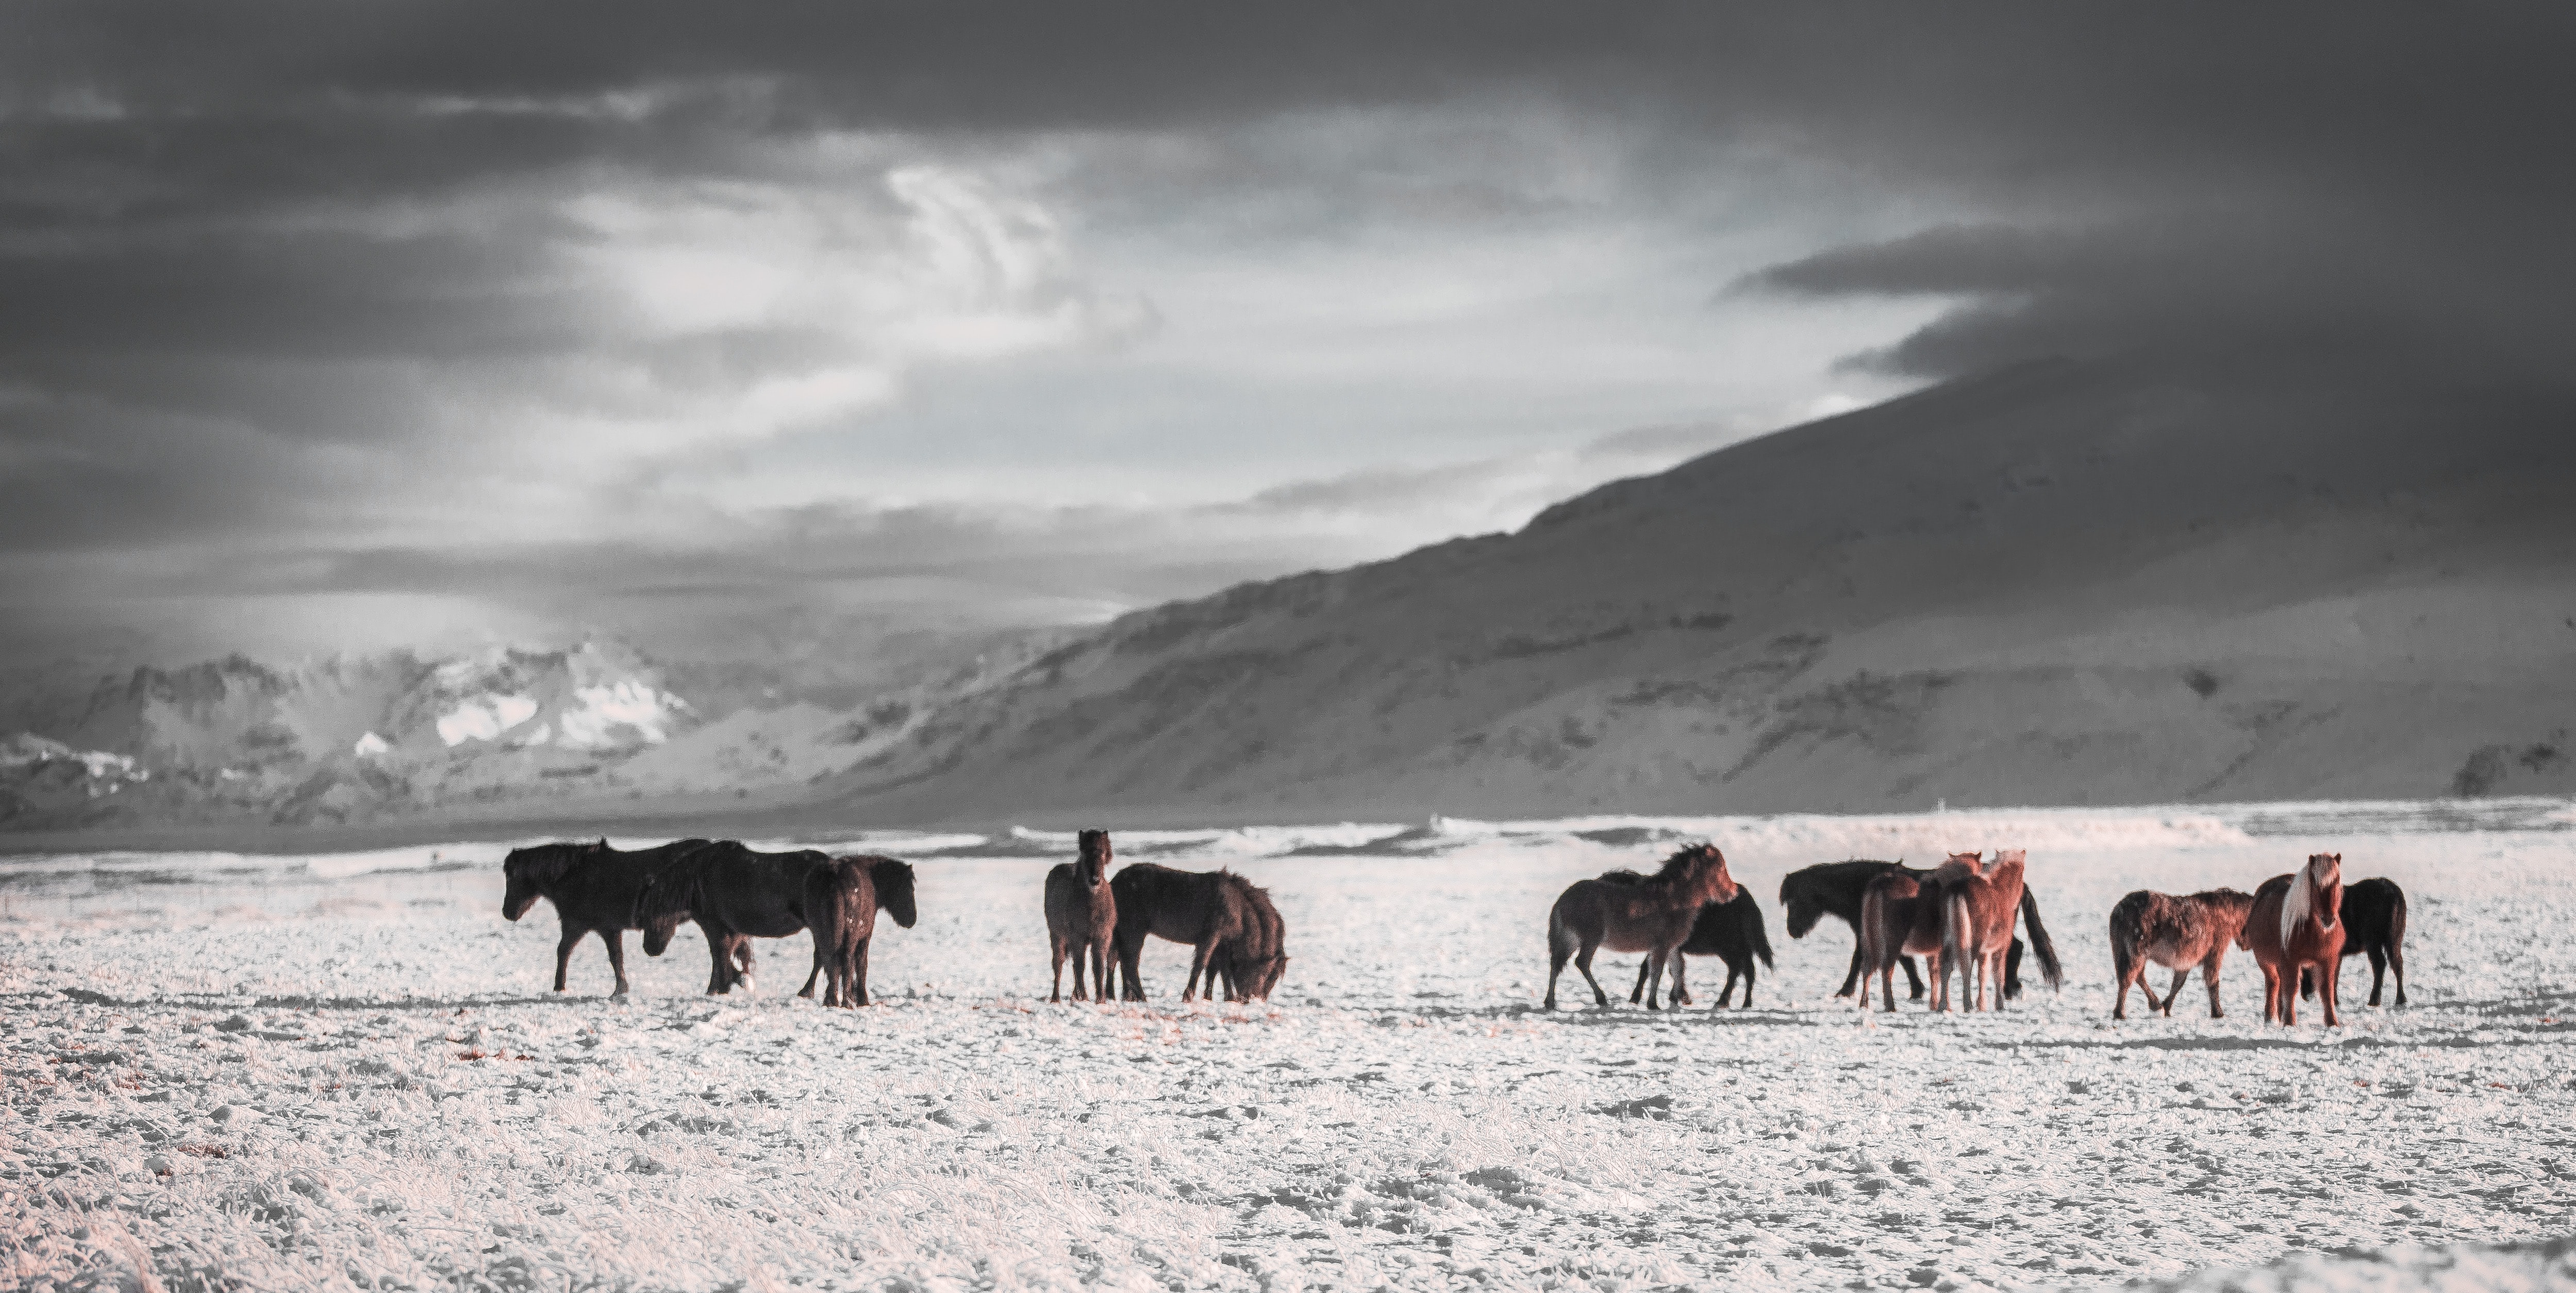 A large herd of ponies on a frozen plain under thick clouds